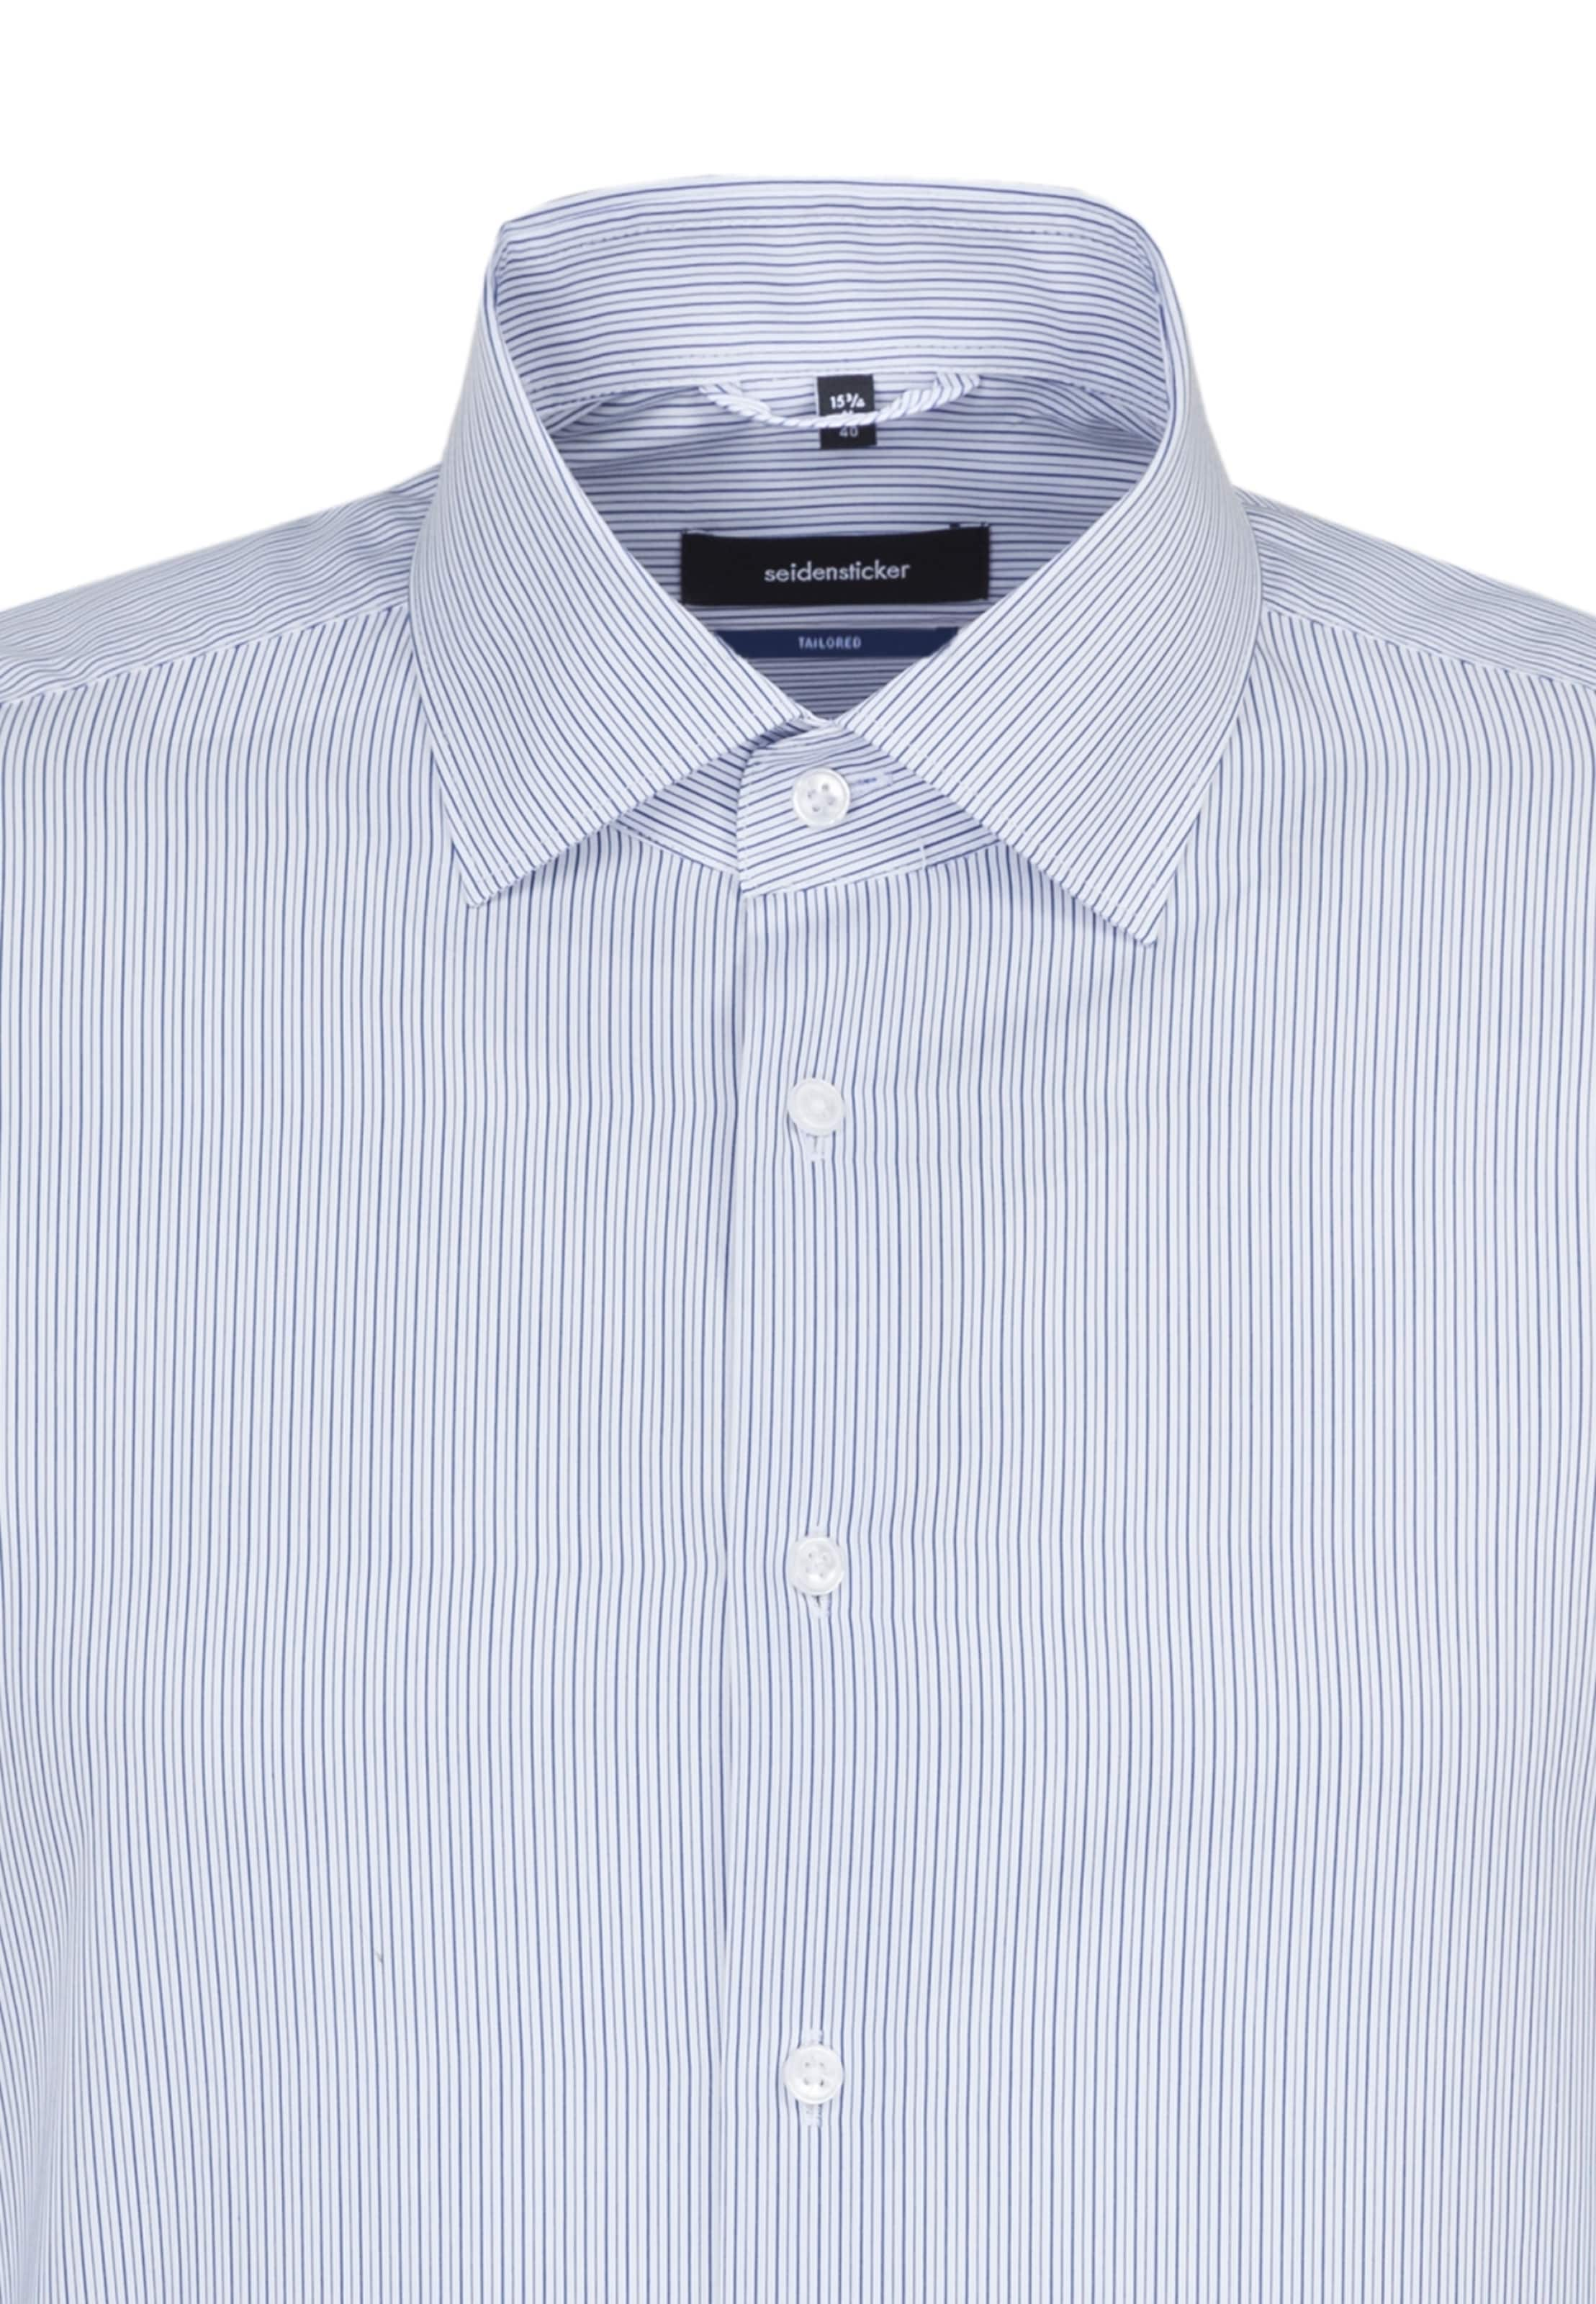 Chemise Business Seidensticker MarineBlanc En Business Seidensticker Chemise P8wnk0O